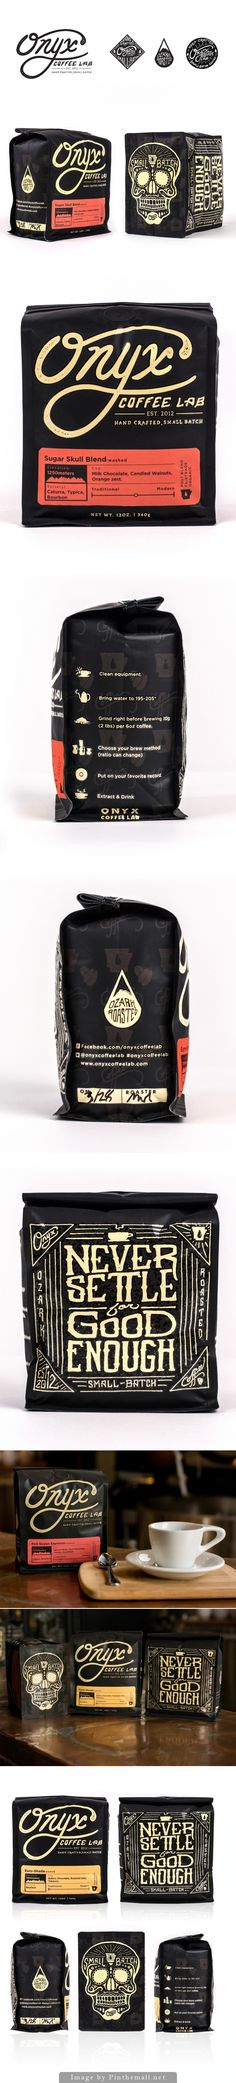 Here's an expanded Onyx coffee pin #identity #packaging #branding PD